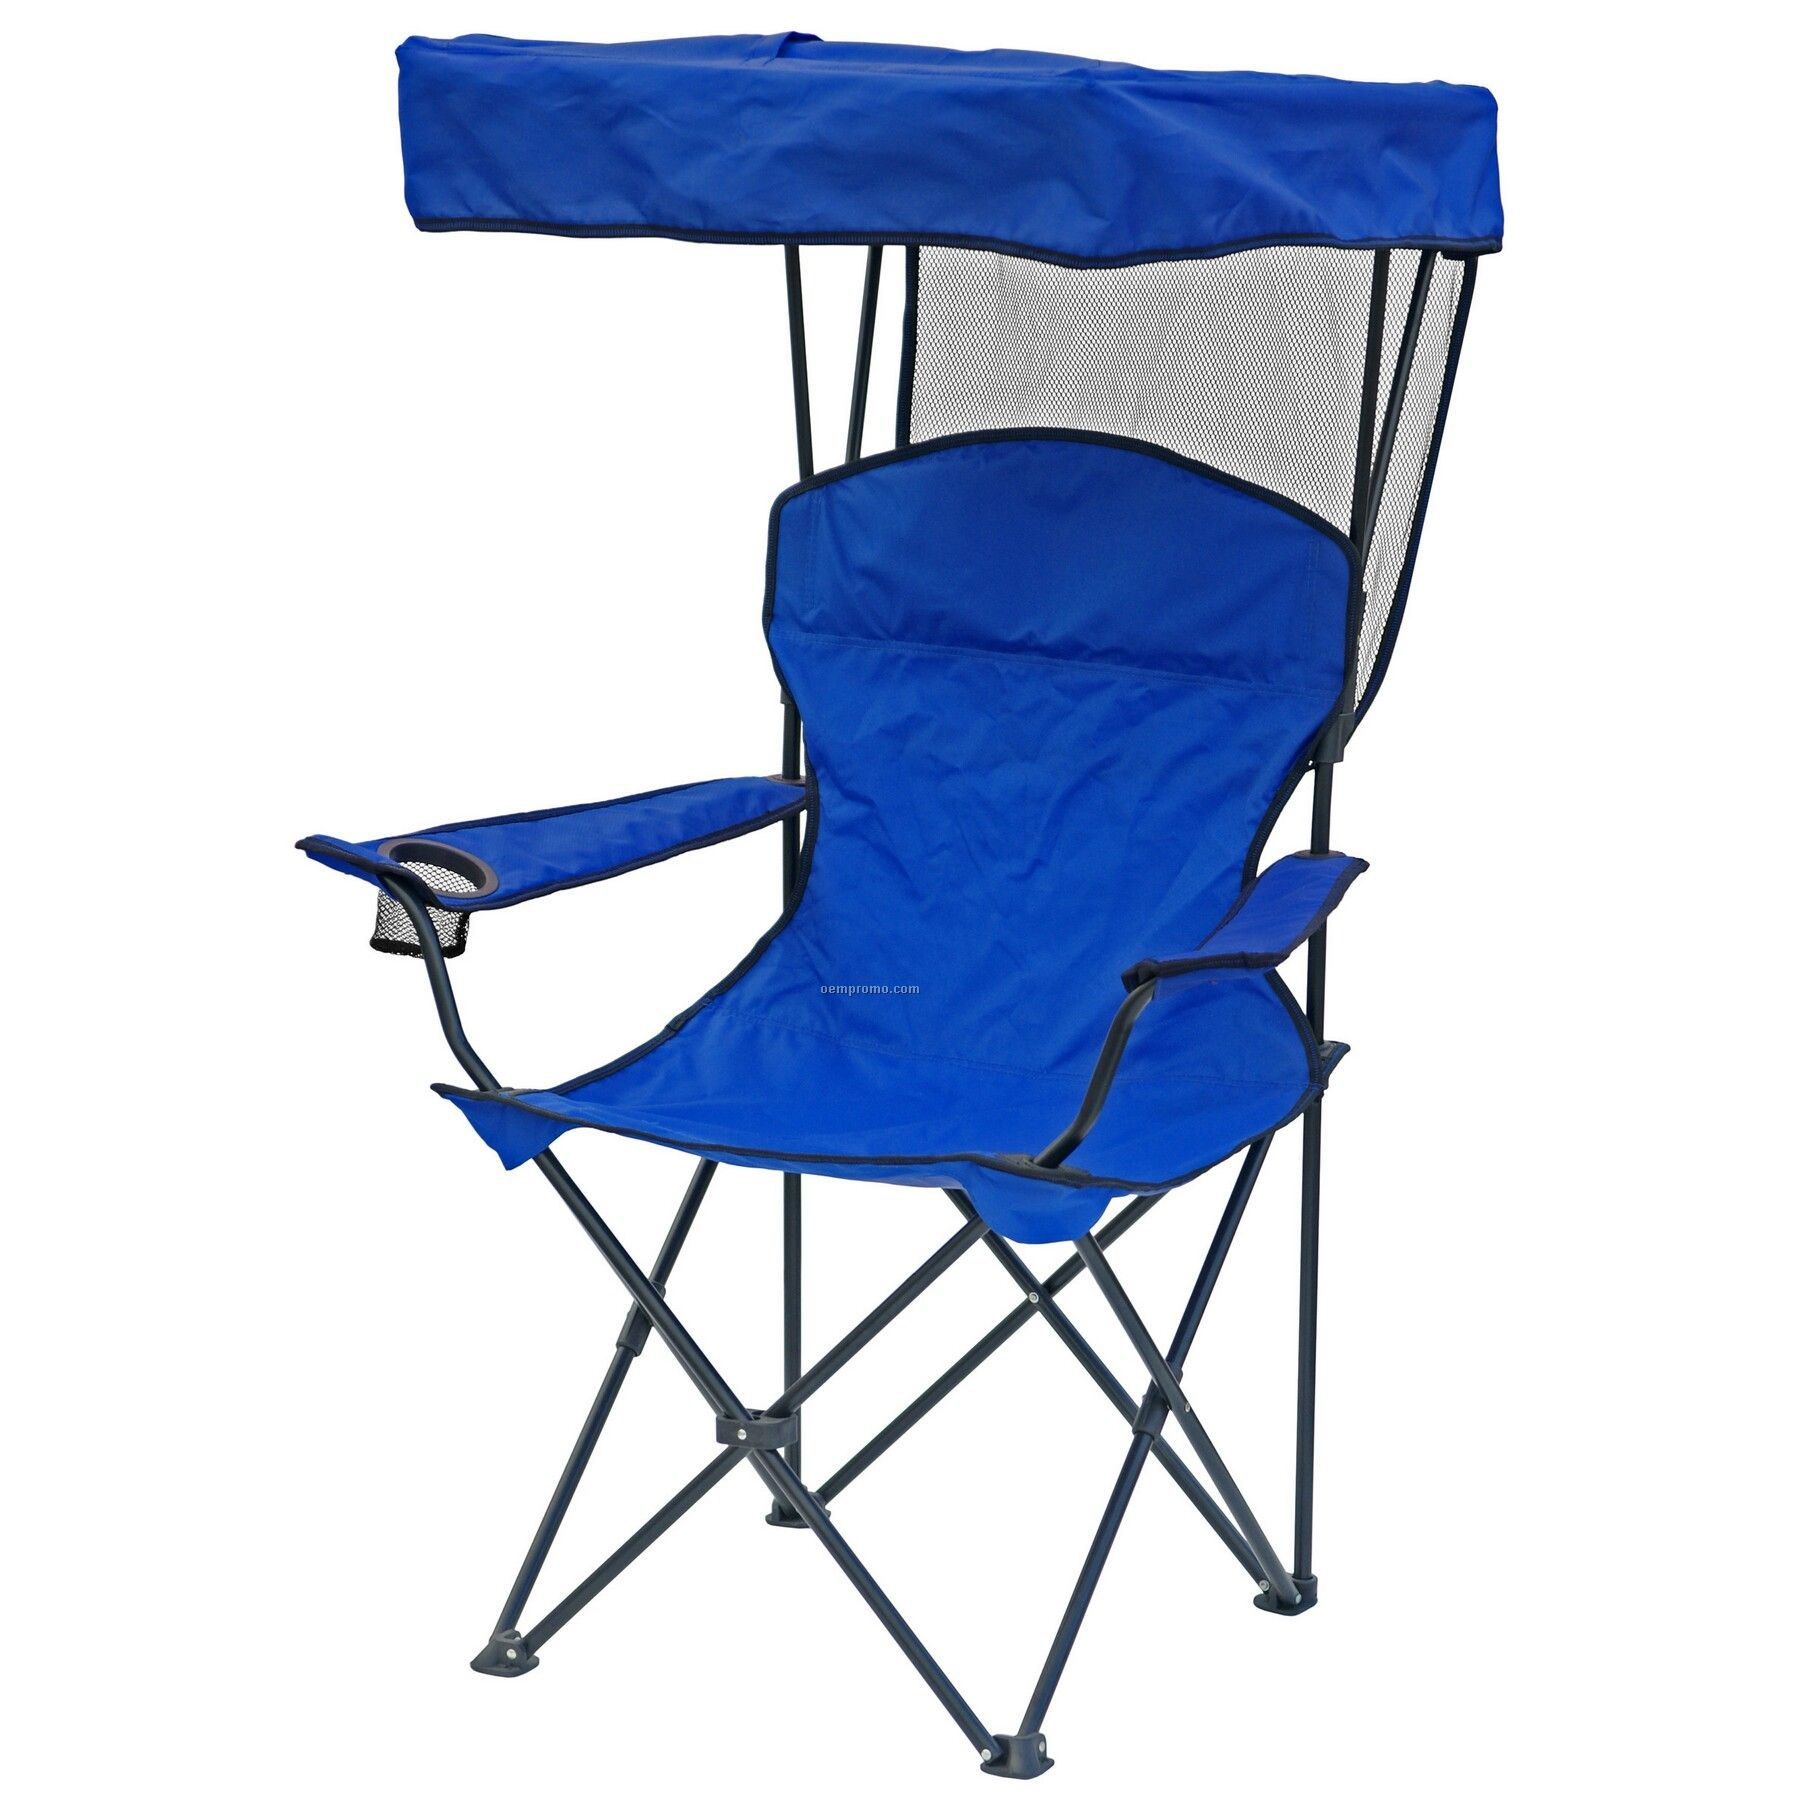 fishing chair no arms swing flipkart direct import folding w canopy arm rests and carry